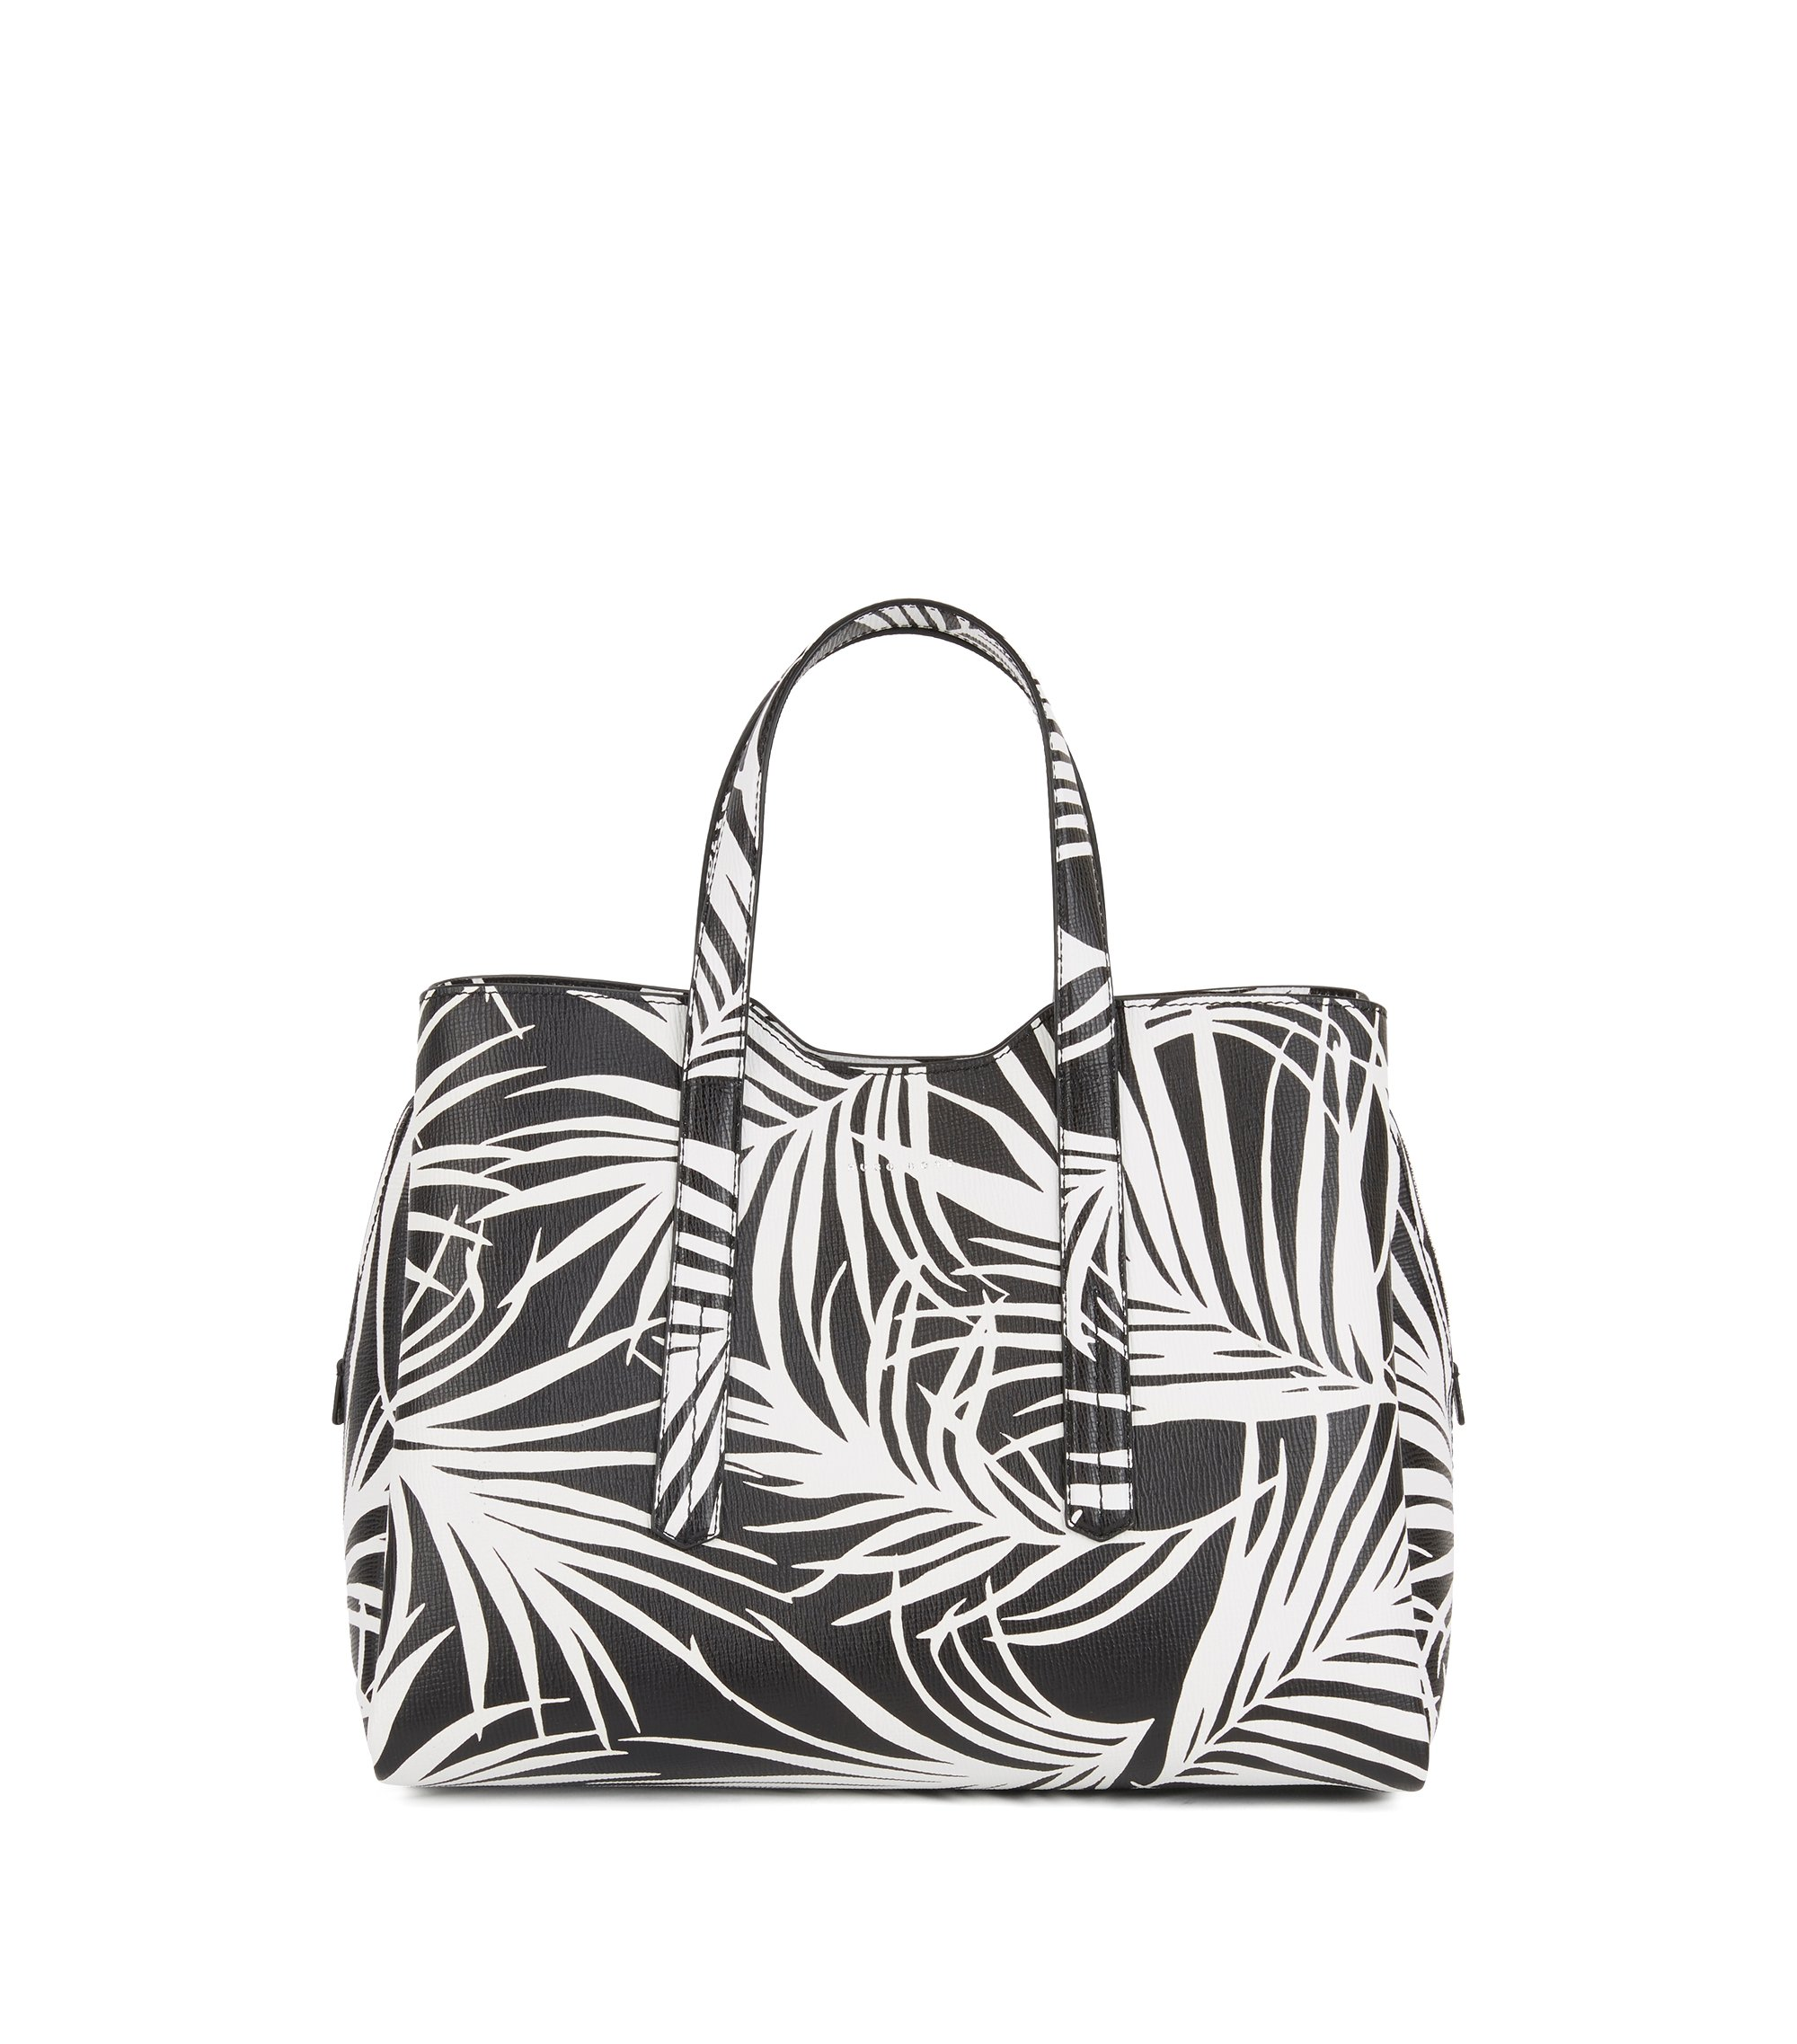 Tote bag in Italian calf leather with seasonal print, Black